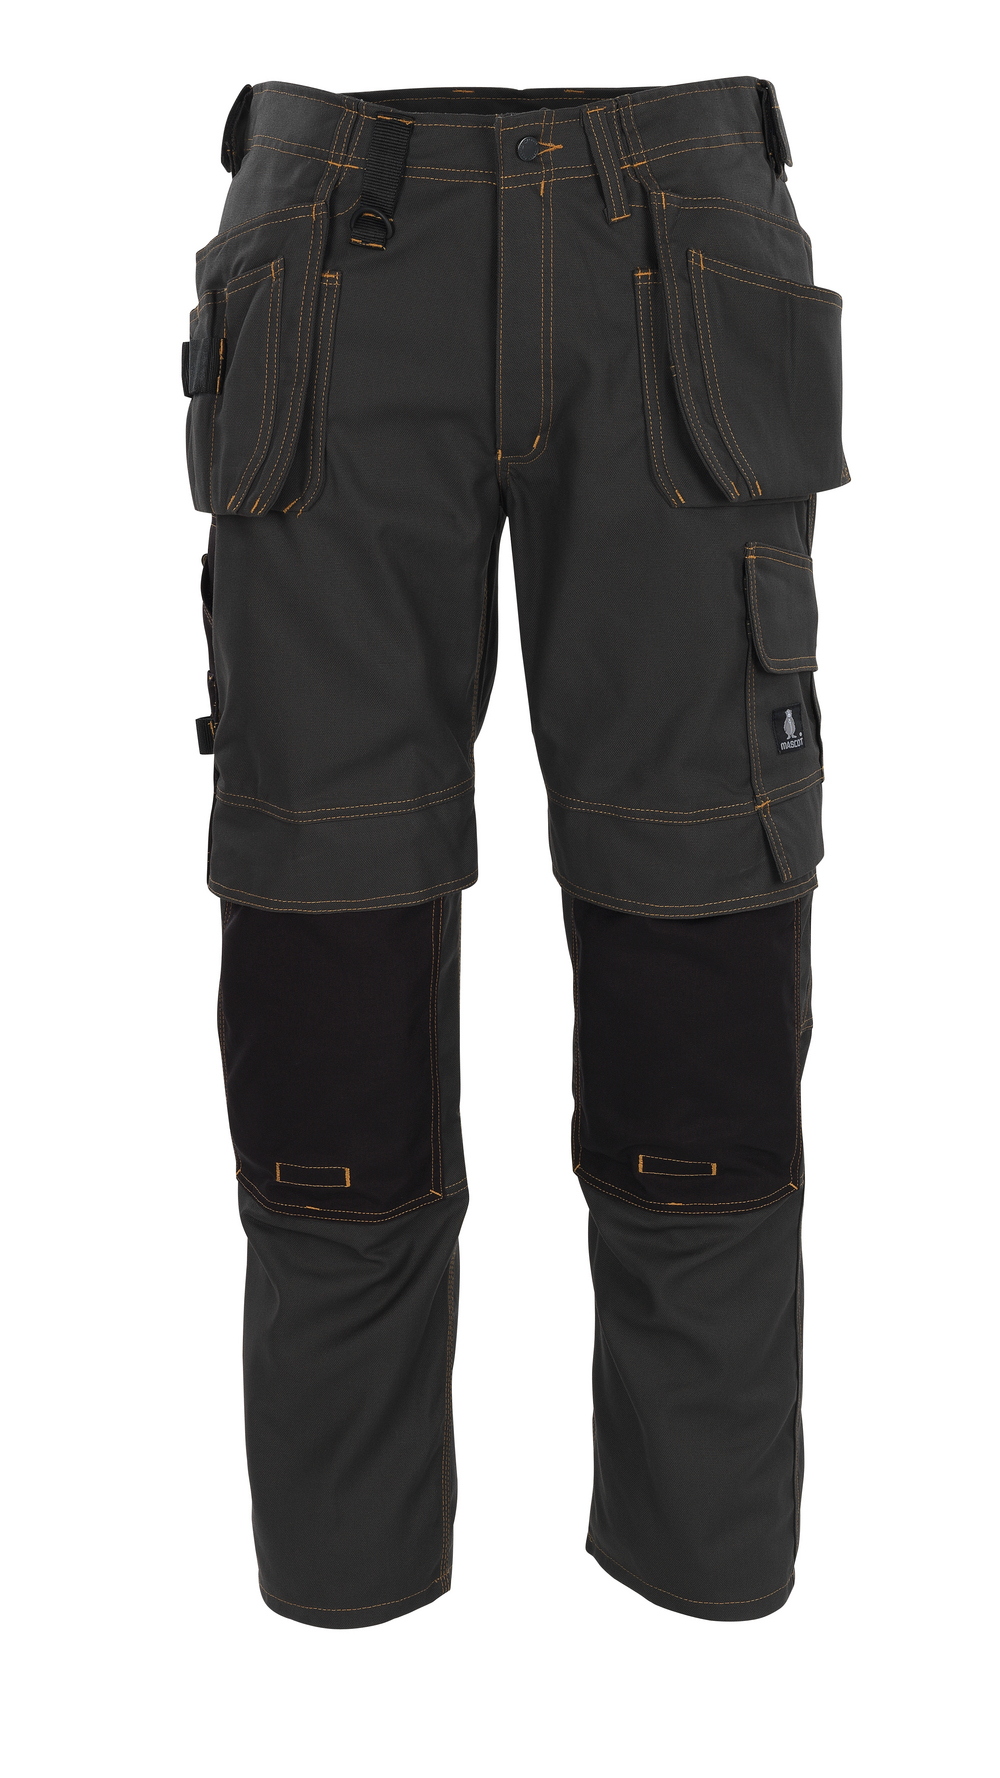 MASCOT ALMADA CRAFTSMENS PANTS WITH KNEEPAD POCKETS